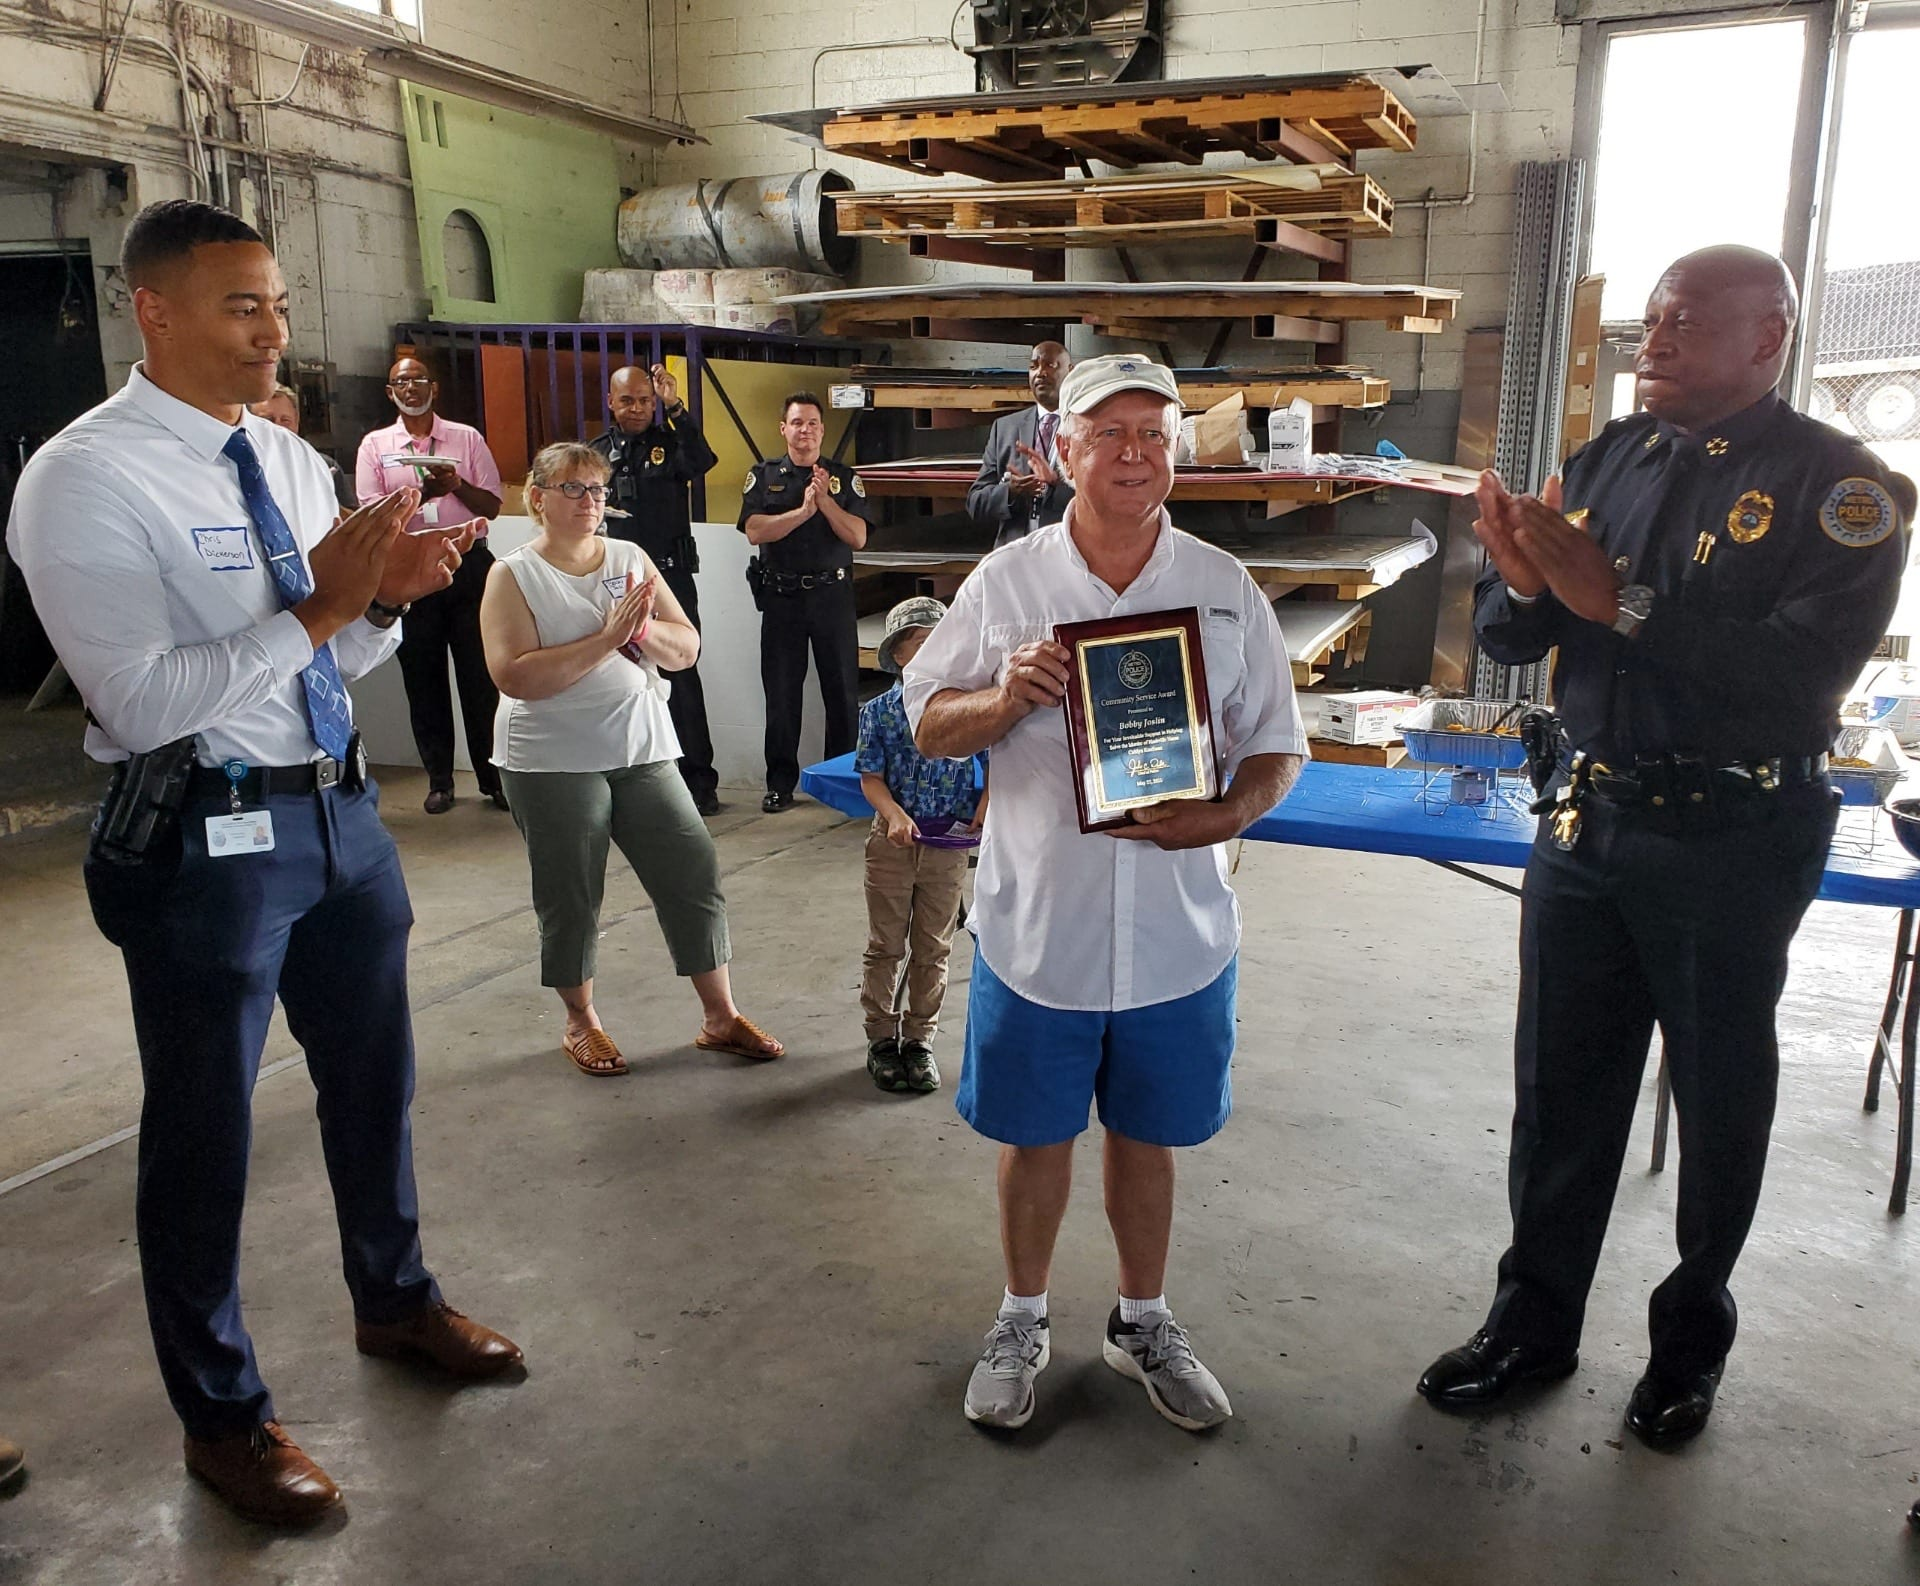 CEO of Joslin and son Signs receives community service award